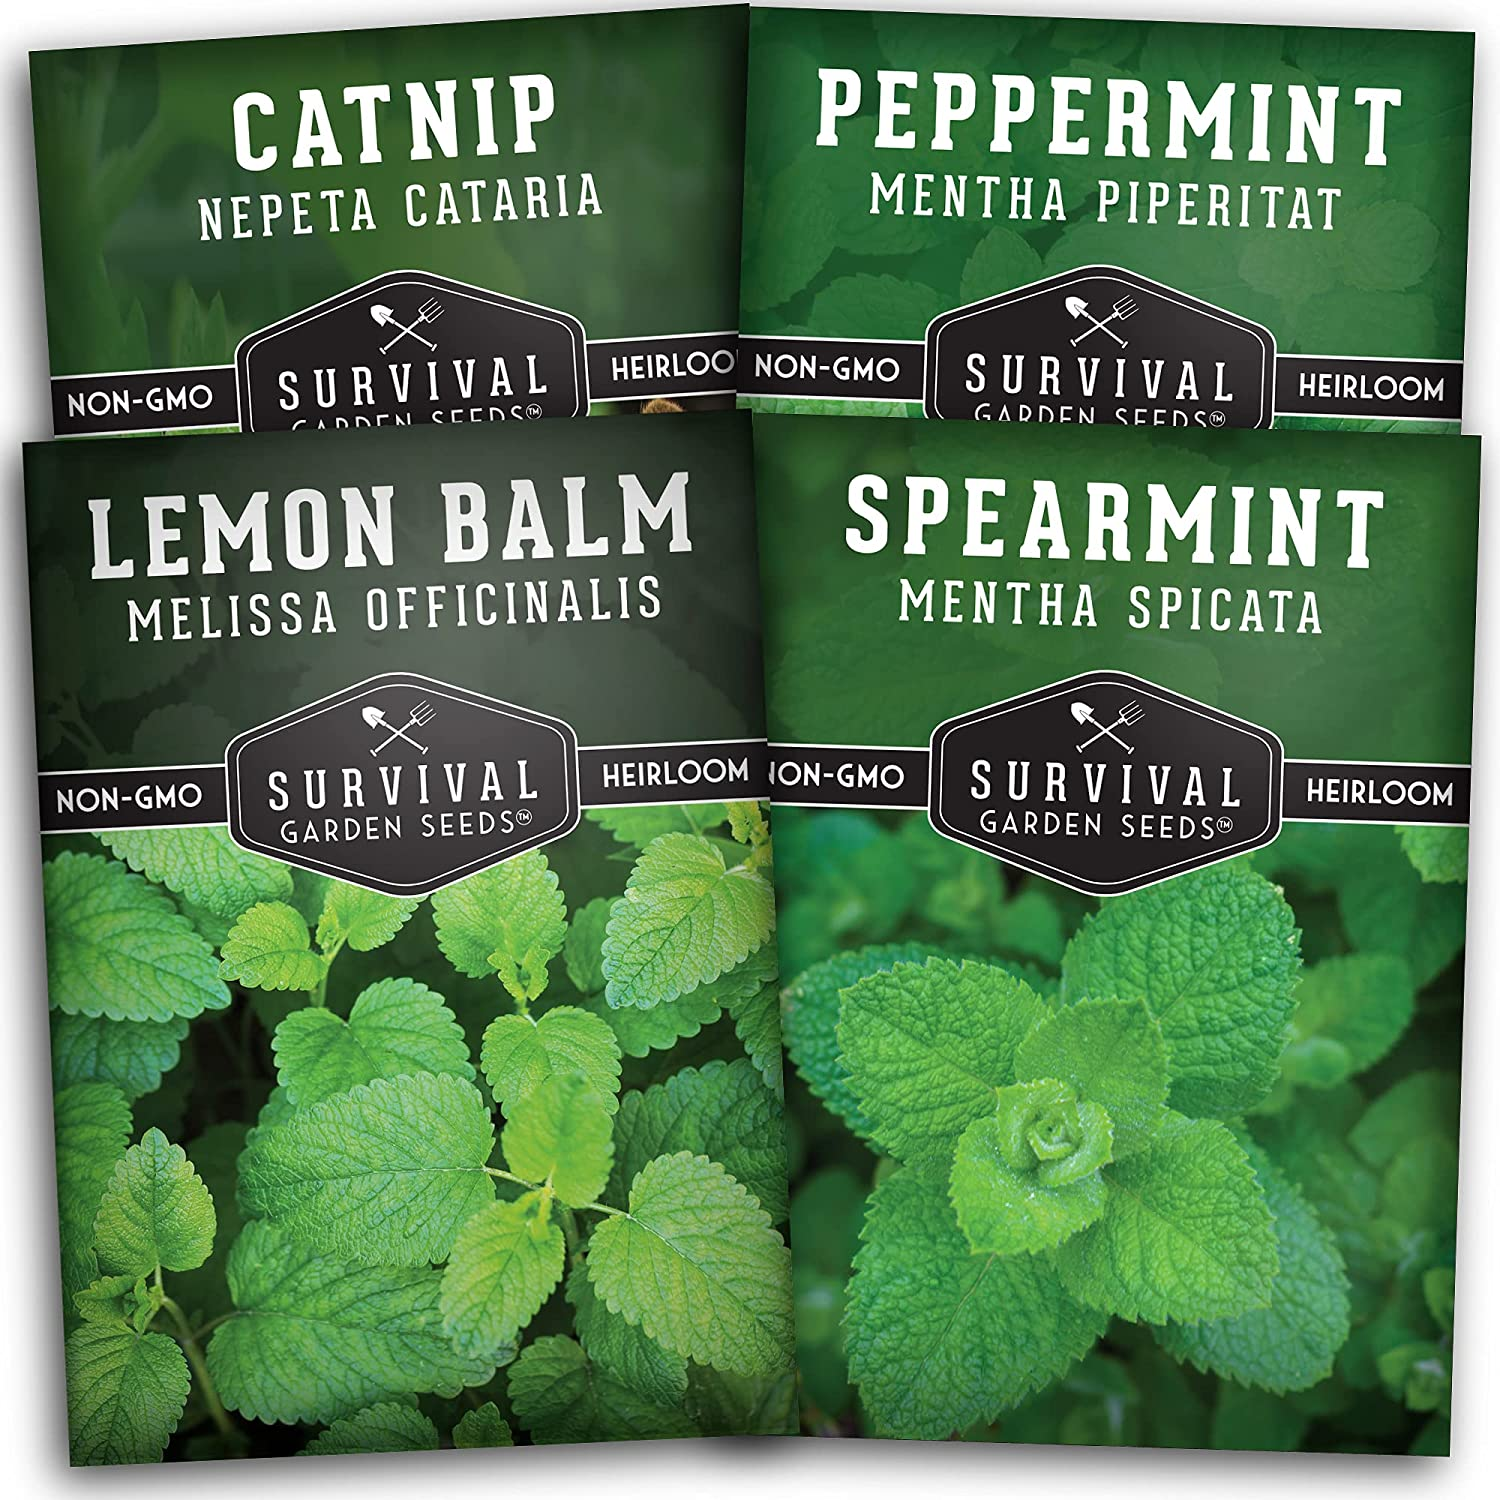 Survival Garden Seeds Mint Collection Seed Vault - Non-GMO Heirloom Herb Seeds for Planting and Growing - Peppermint, Spearmint, Lemon Balm and Catnip Seeds to Grow in Containers or in The Garden